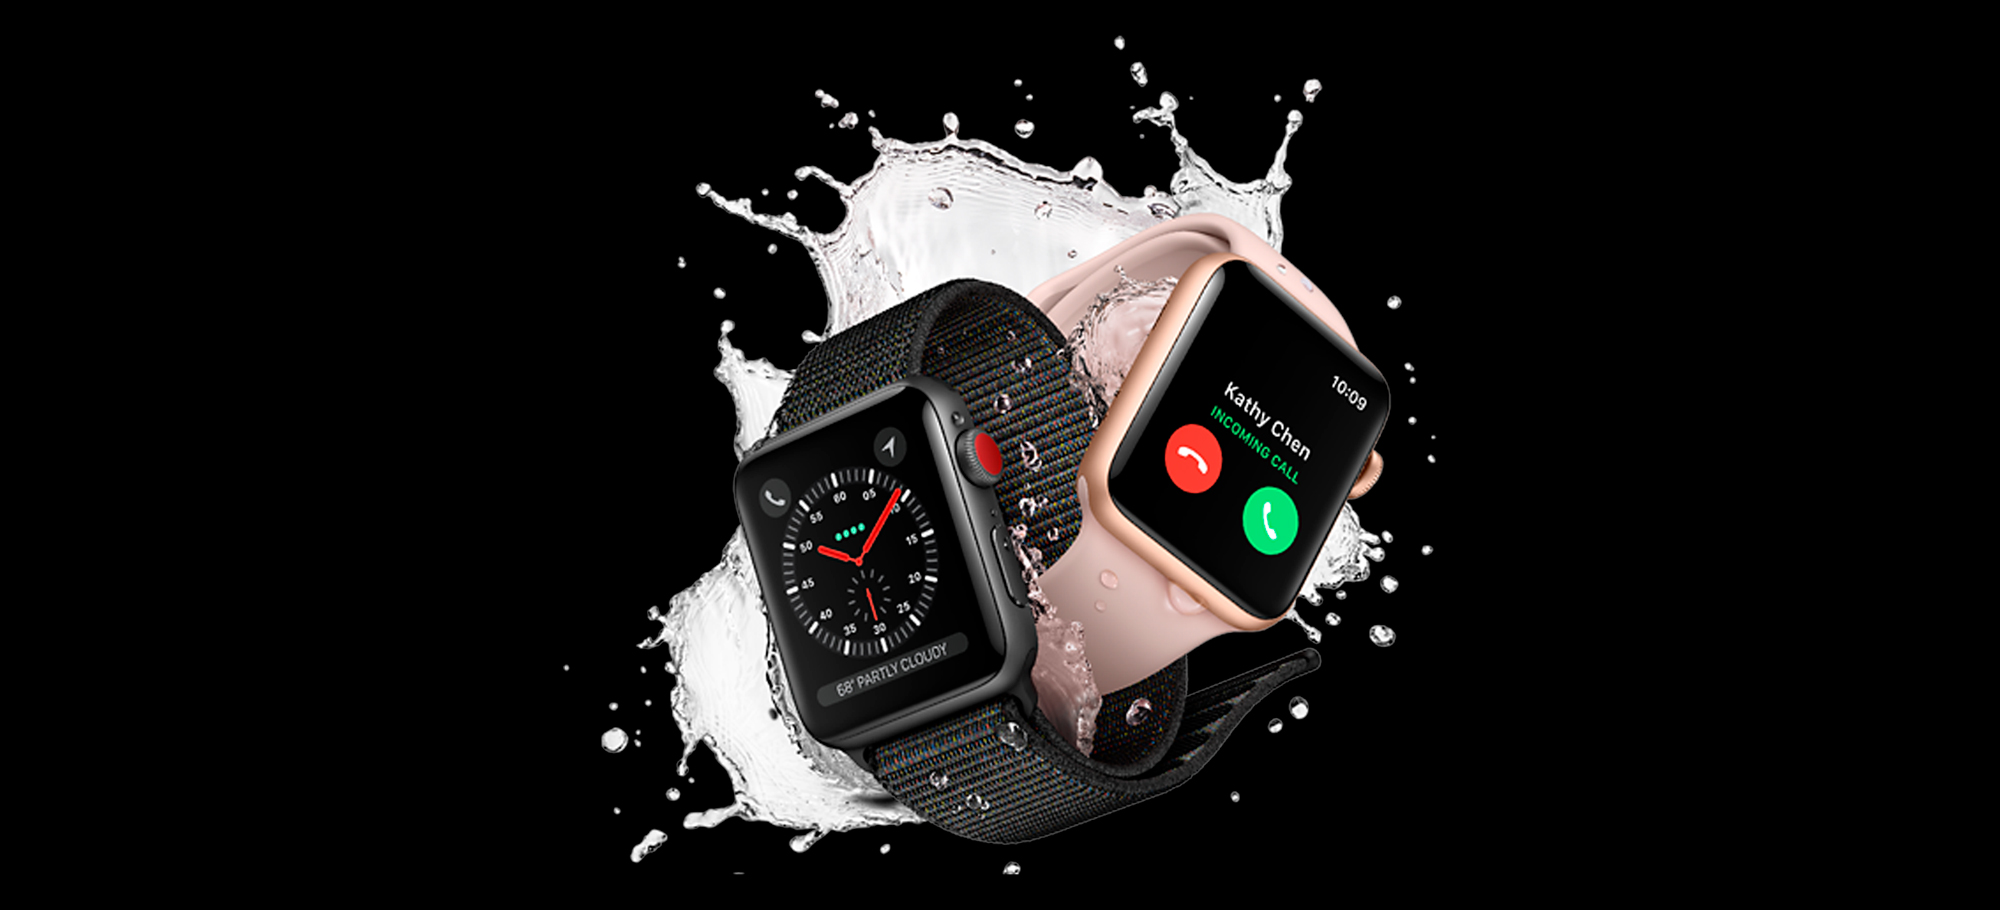 cambiar pantalla Apple Watch 3